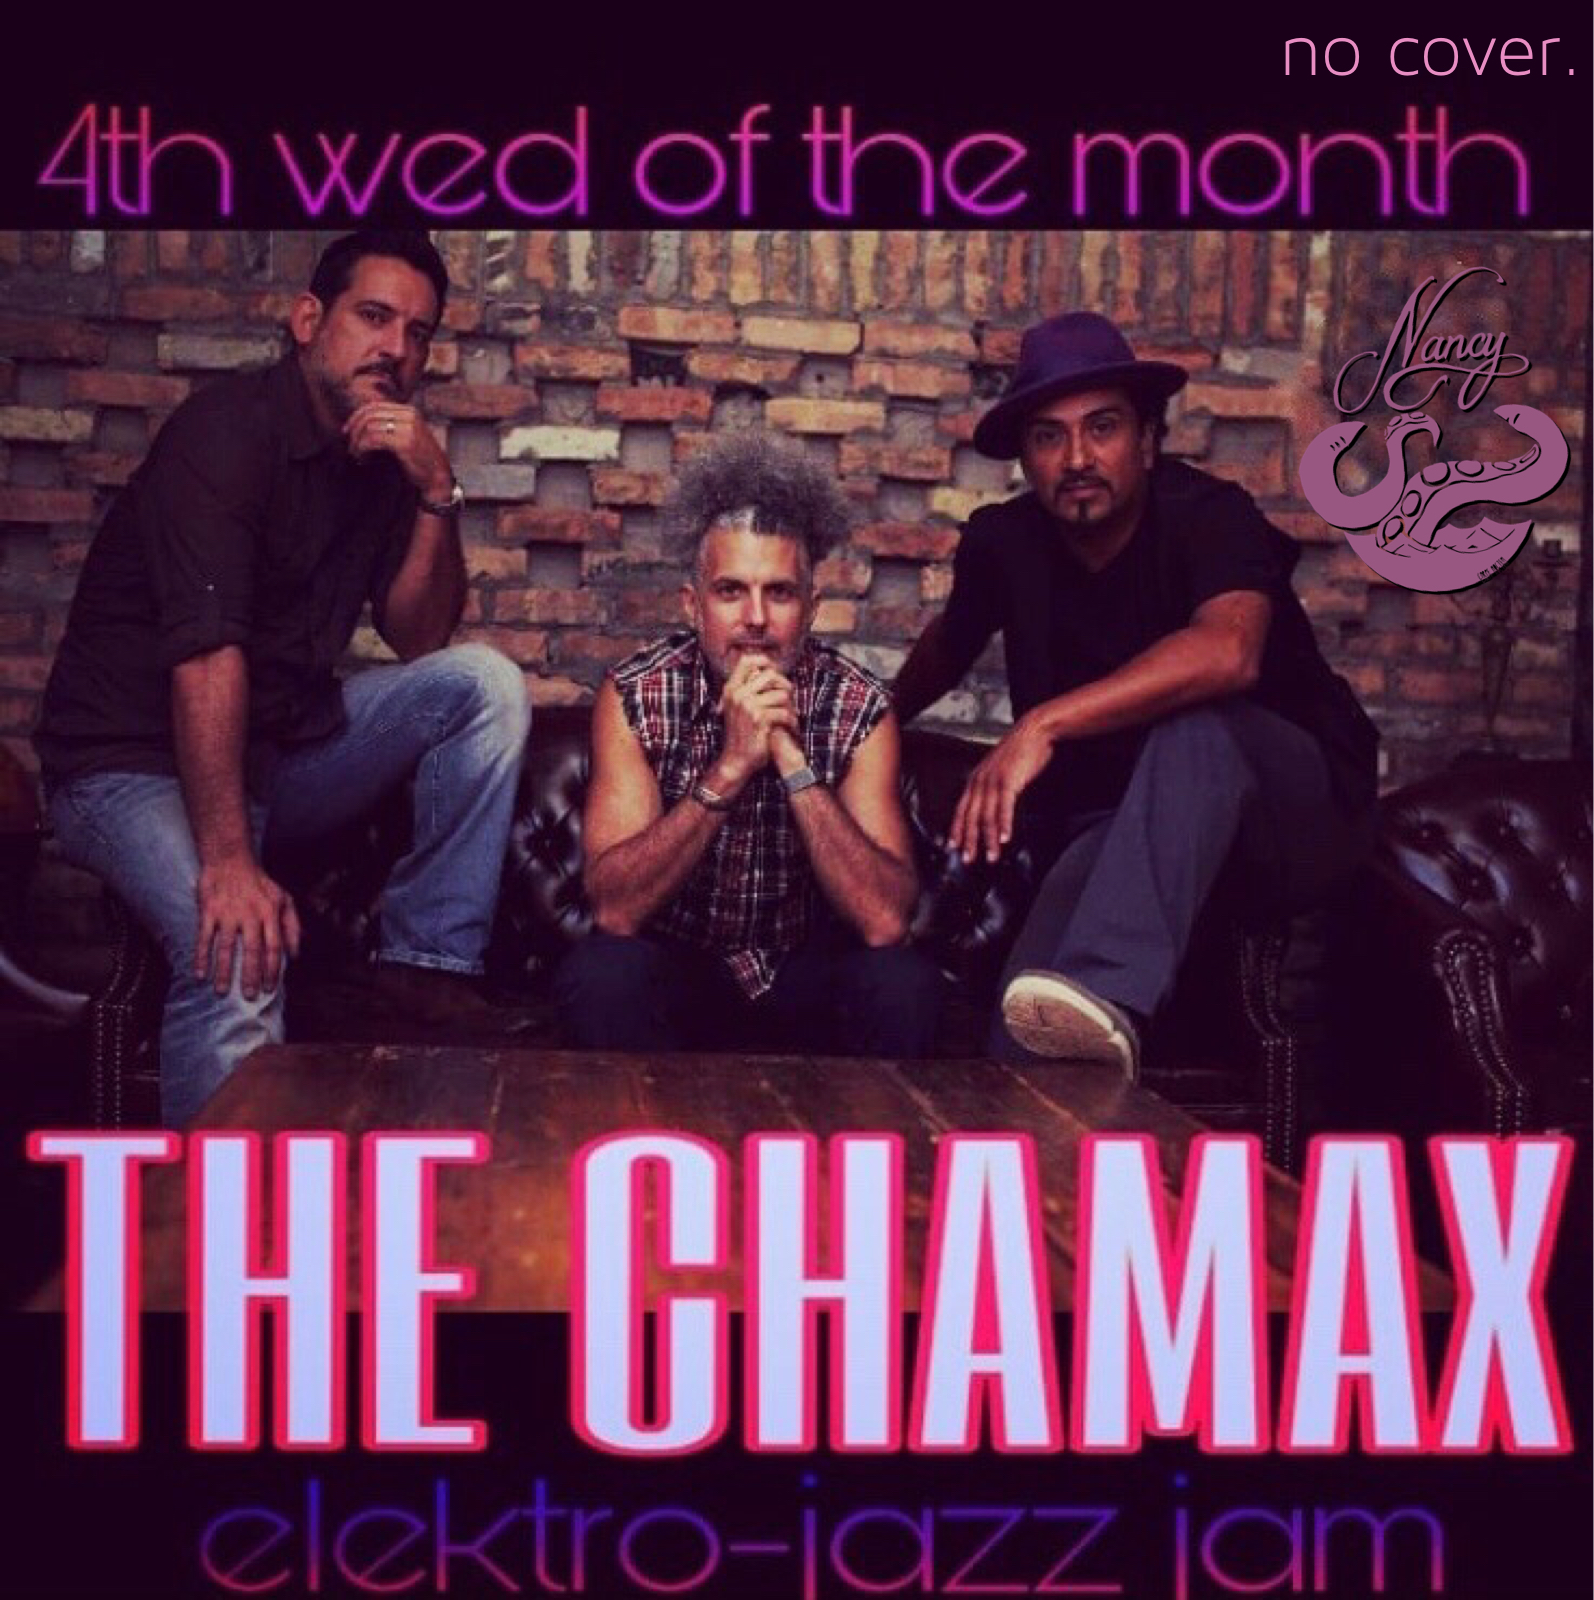 THE CHAMAX - ELEKTRO-JAZZ JAM - NO COVER - 9PM - NO COVER